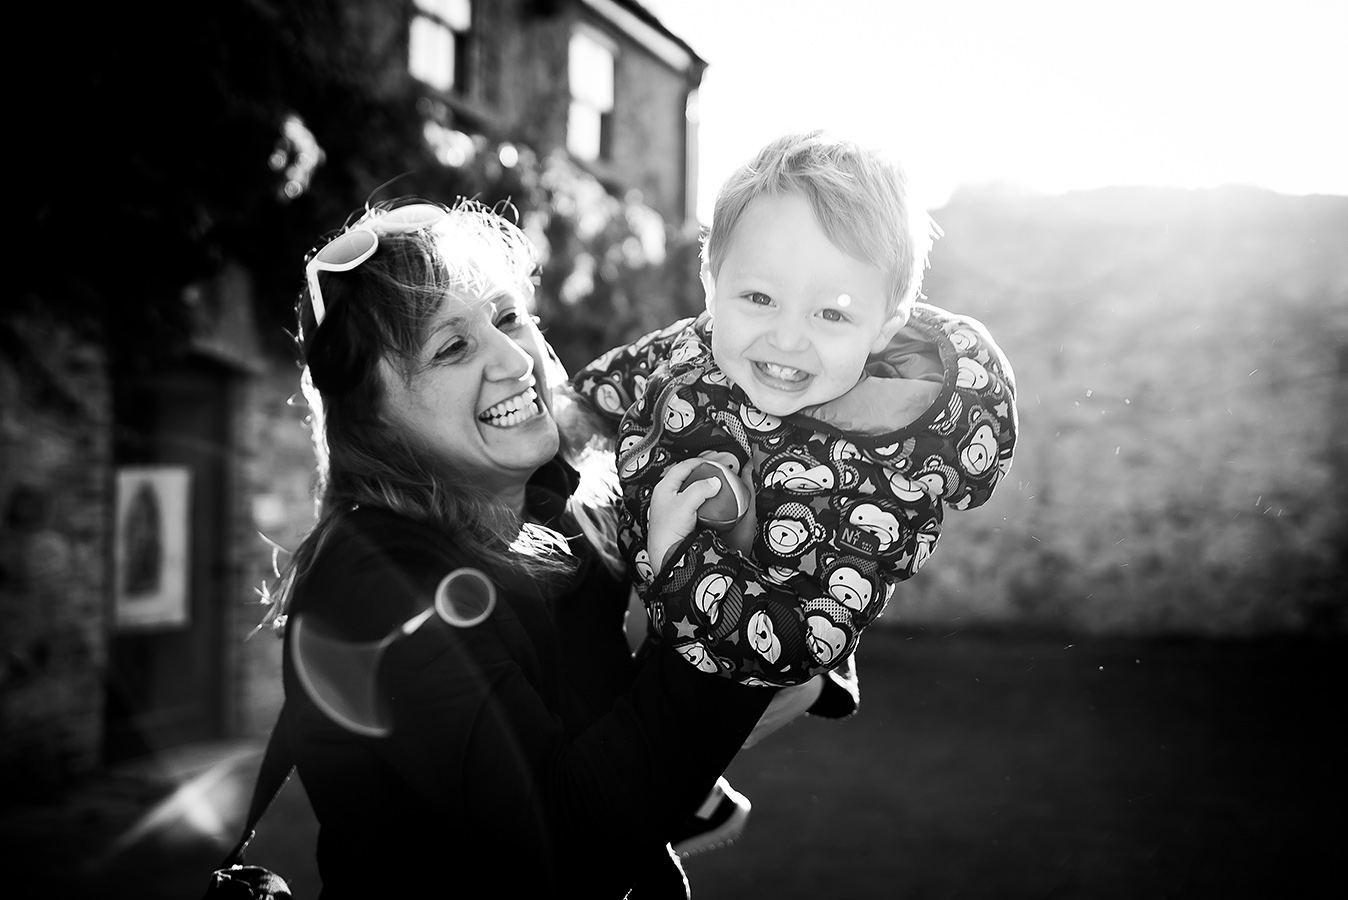 Mother playing with son - Family Photoshoot at Marlay Park in Dublin by Camila Lee